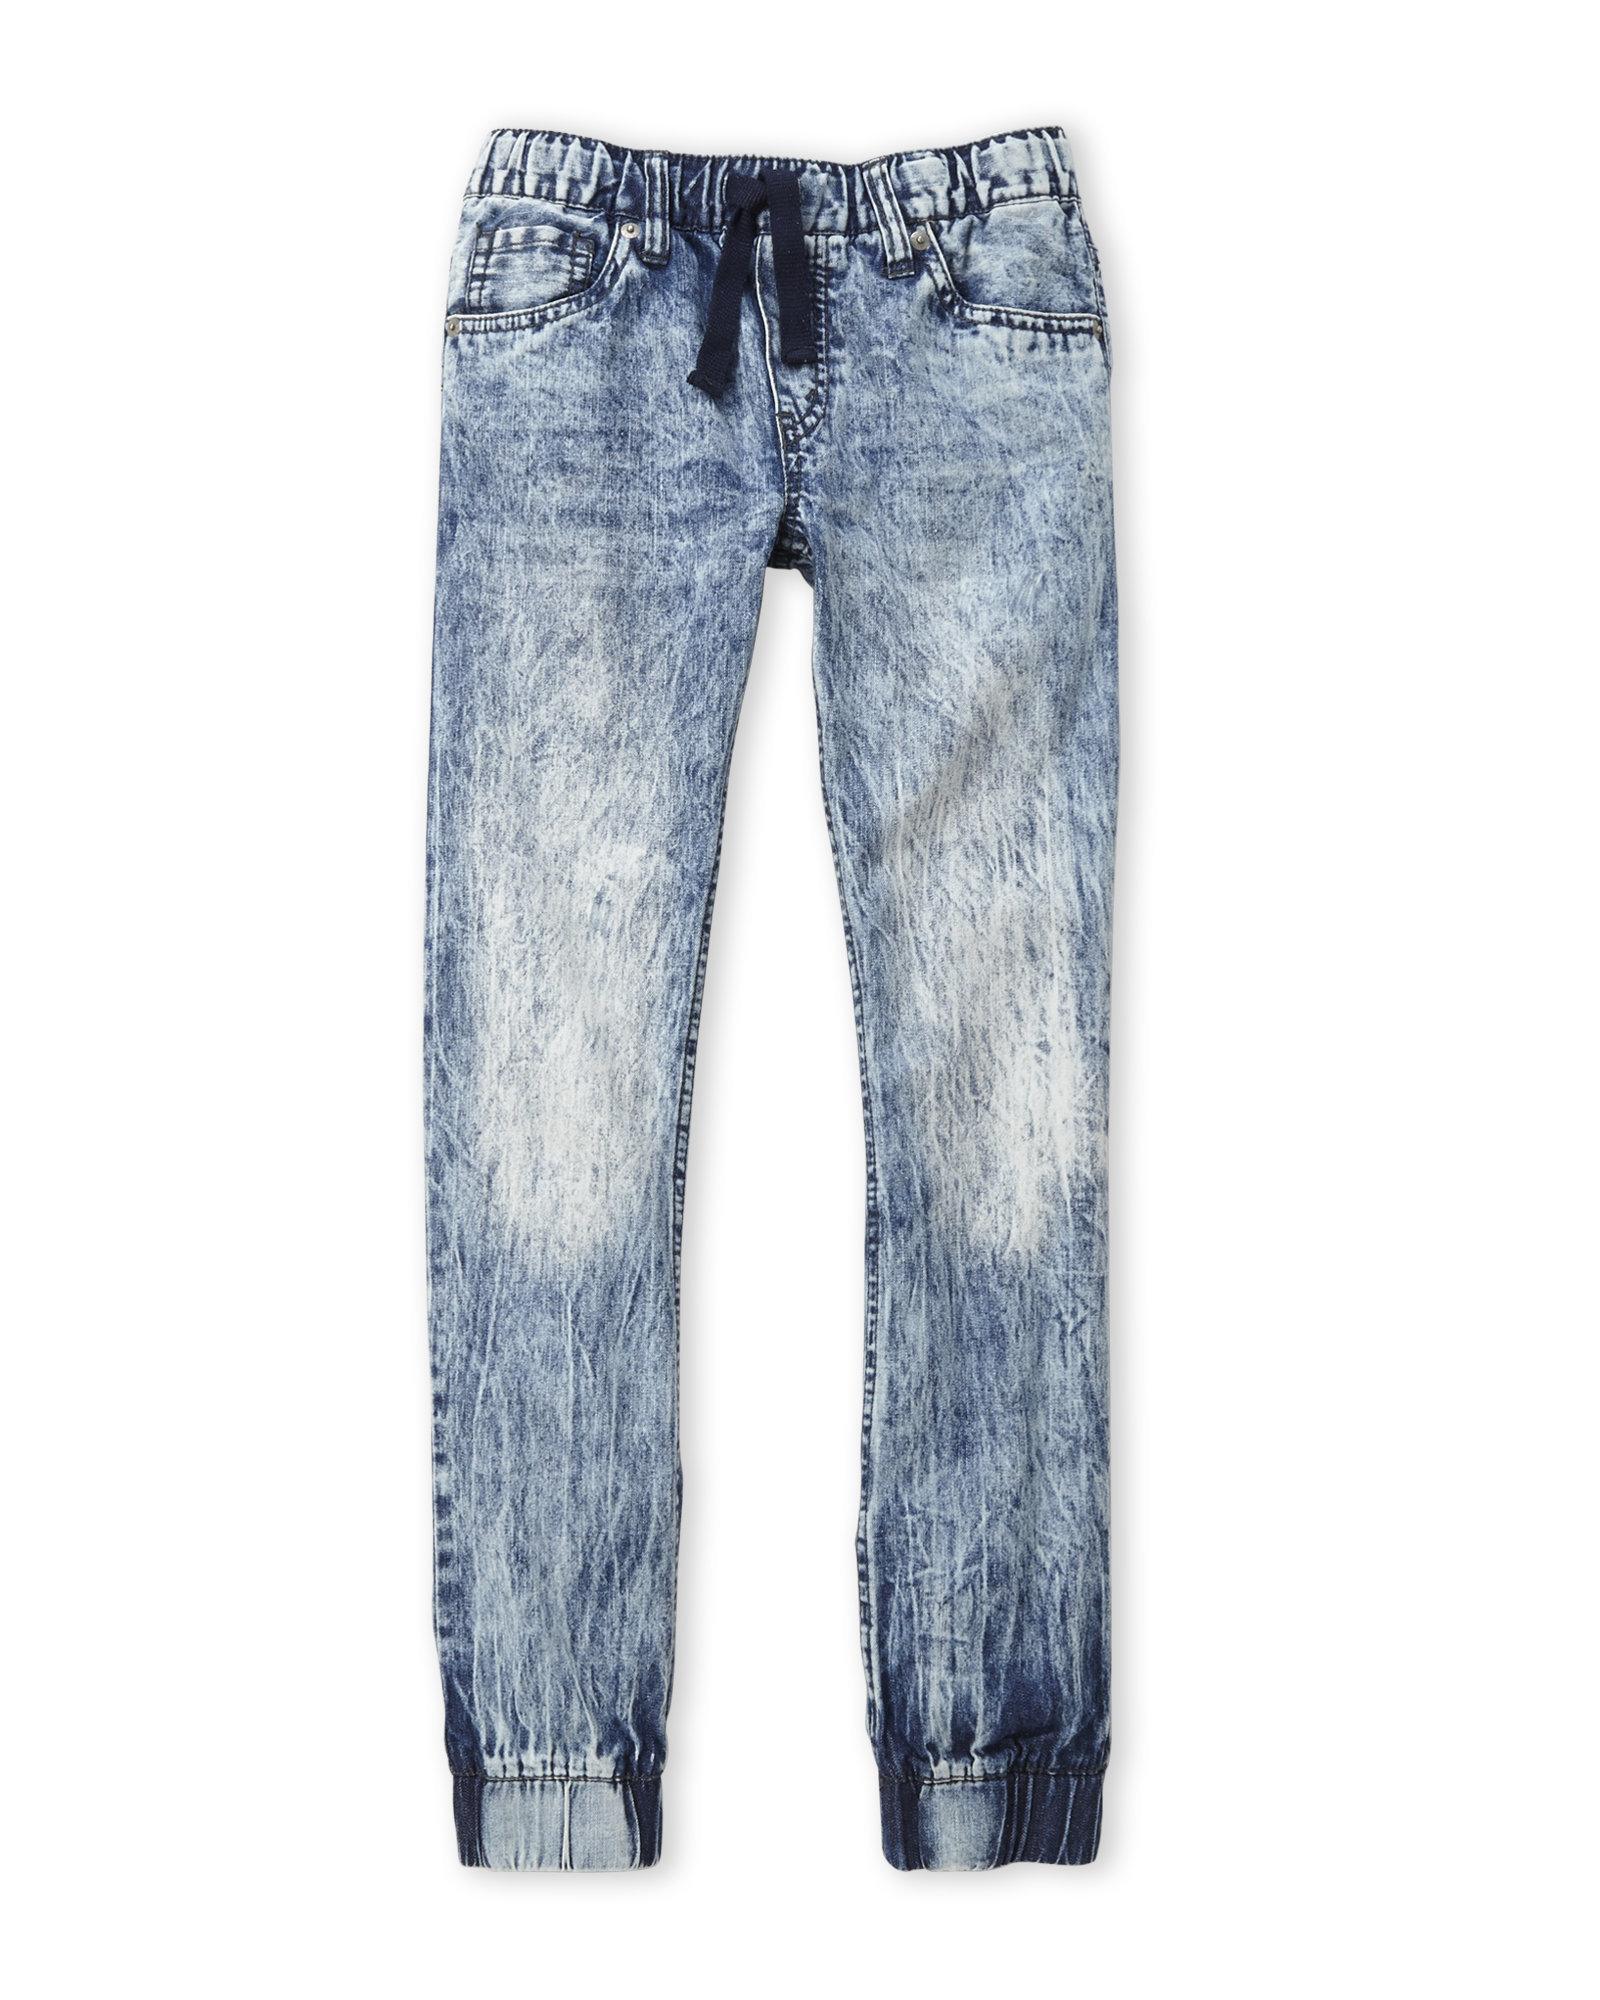 Greca Turn-up Acid Wash Jeans by Young Versace for Boys. Stretch cotton, acid wash jeans with Greca Key turn-up hems, and Young Versace Medusa button features.